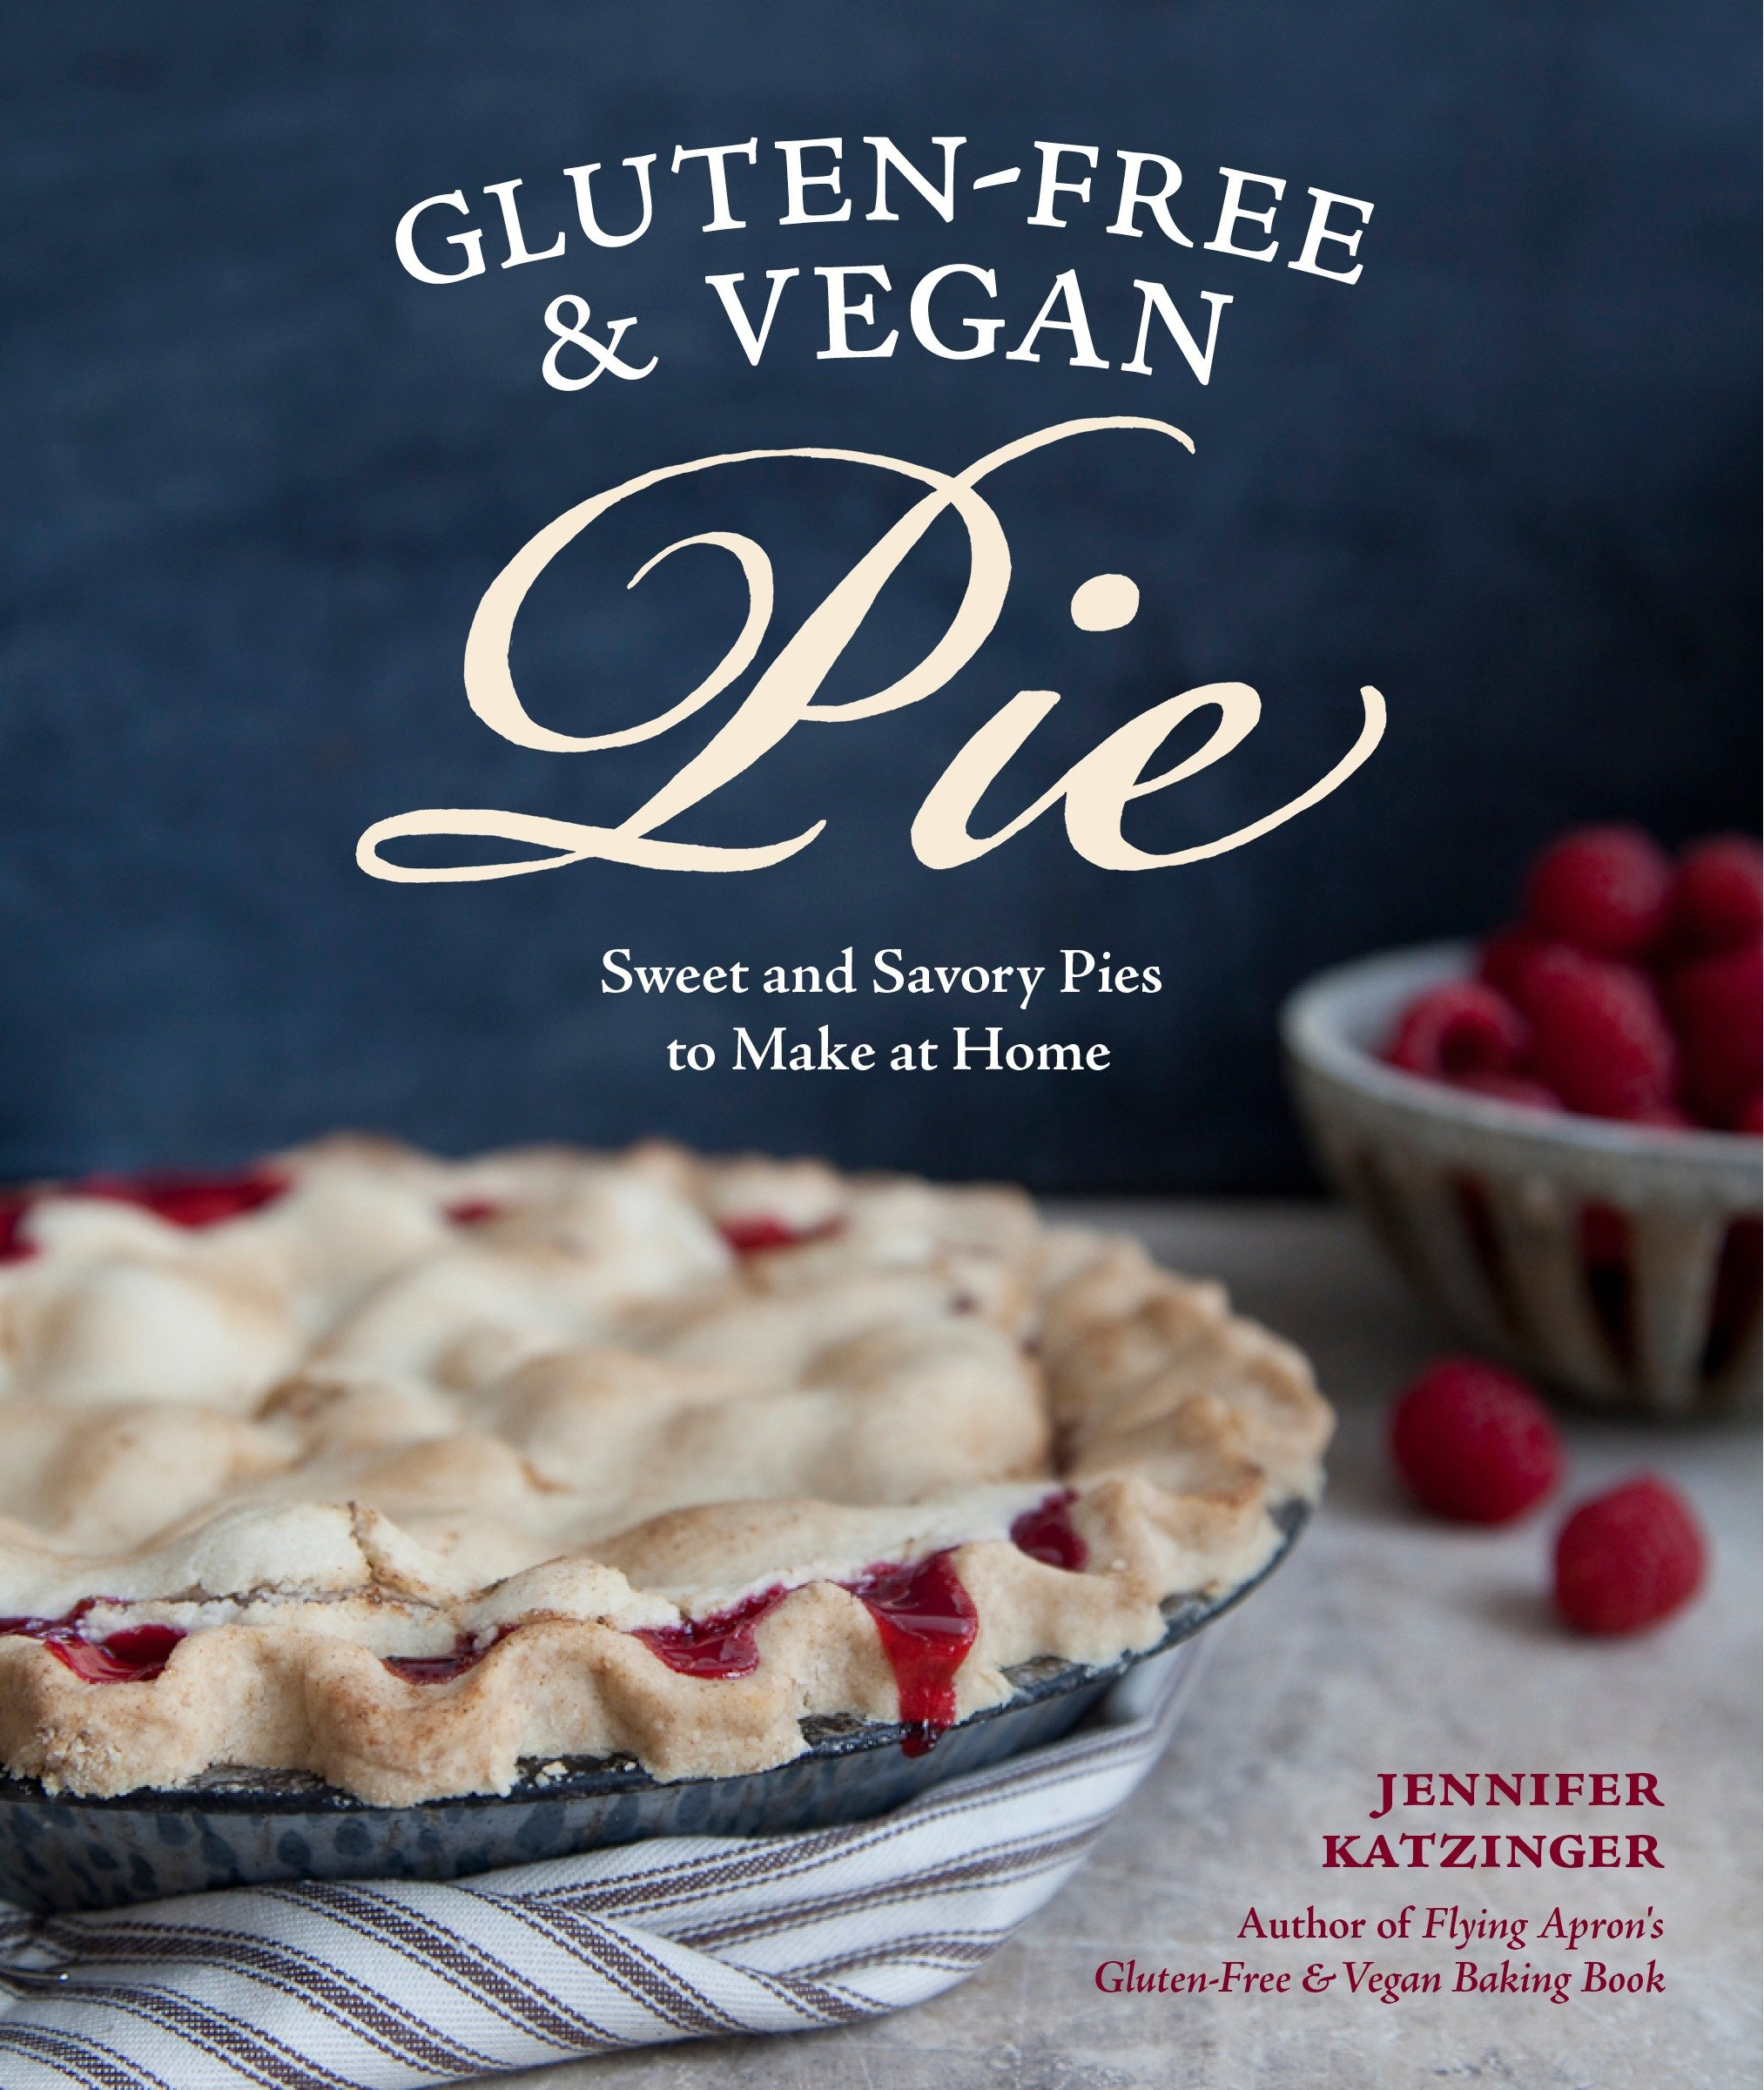 Gluten-Free & Vegan Pie More than 50 Sweet and Savory Pies to Make at Home